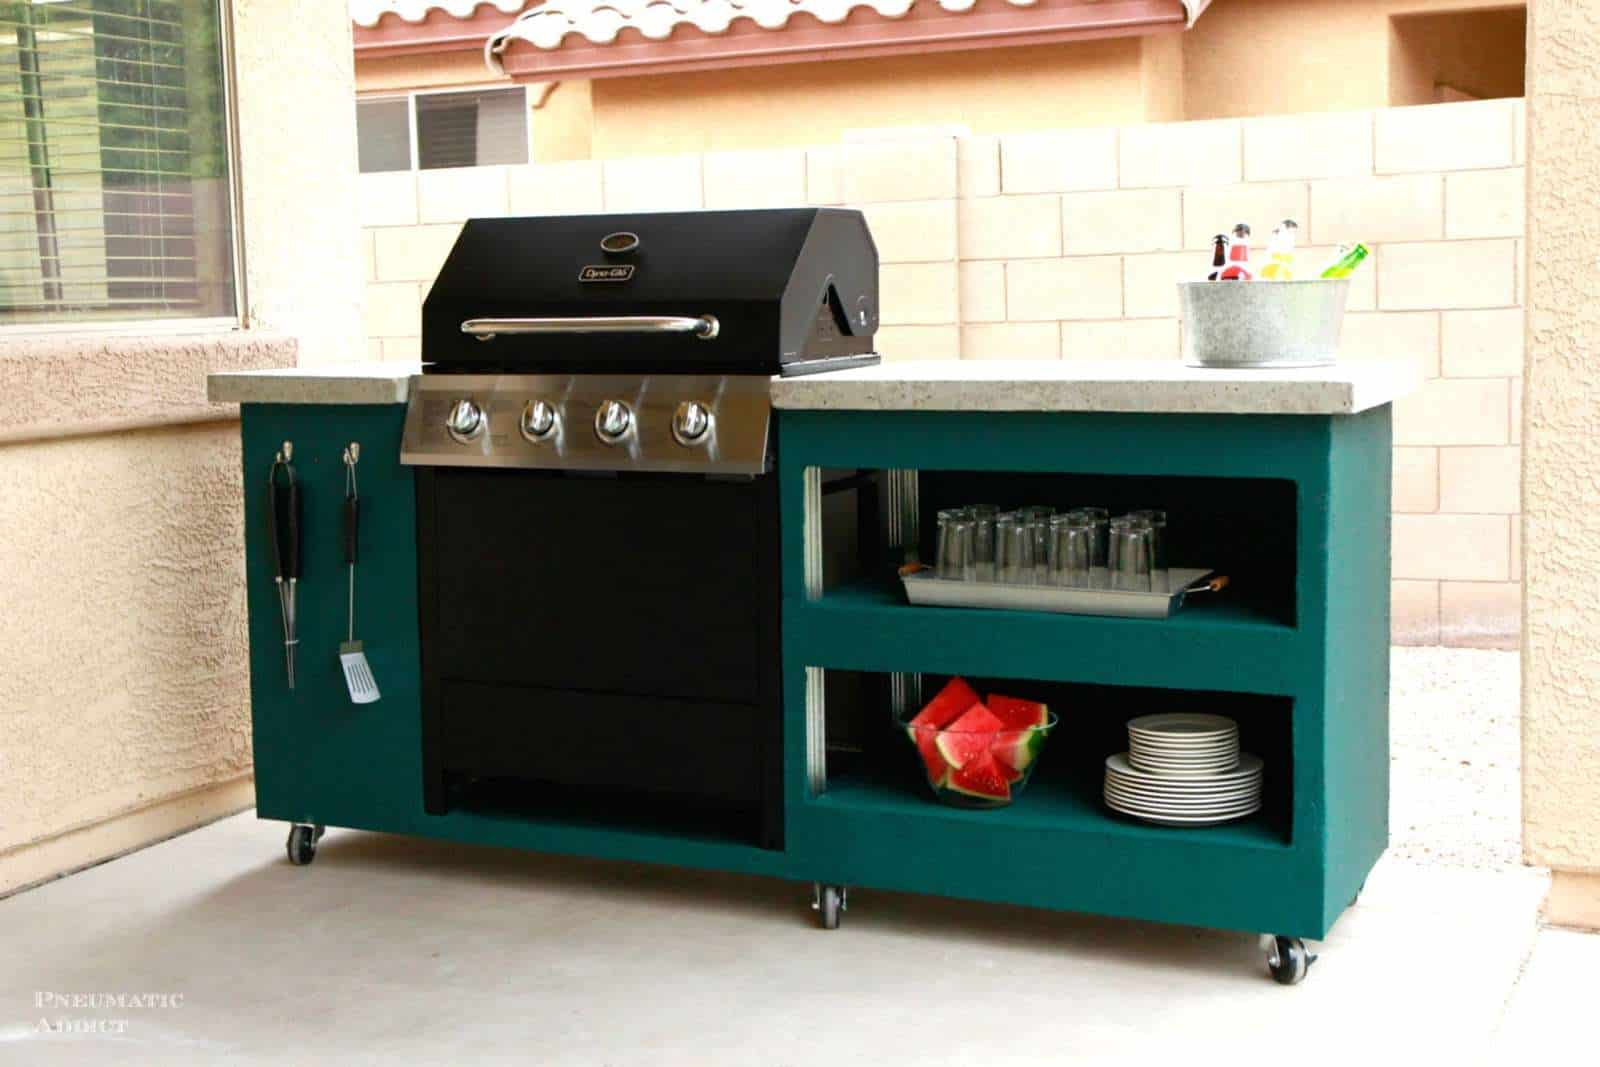 Rolling Outdoor Grill Station